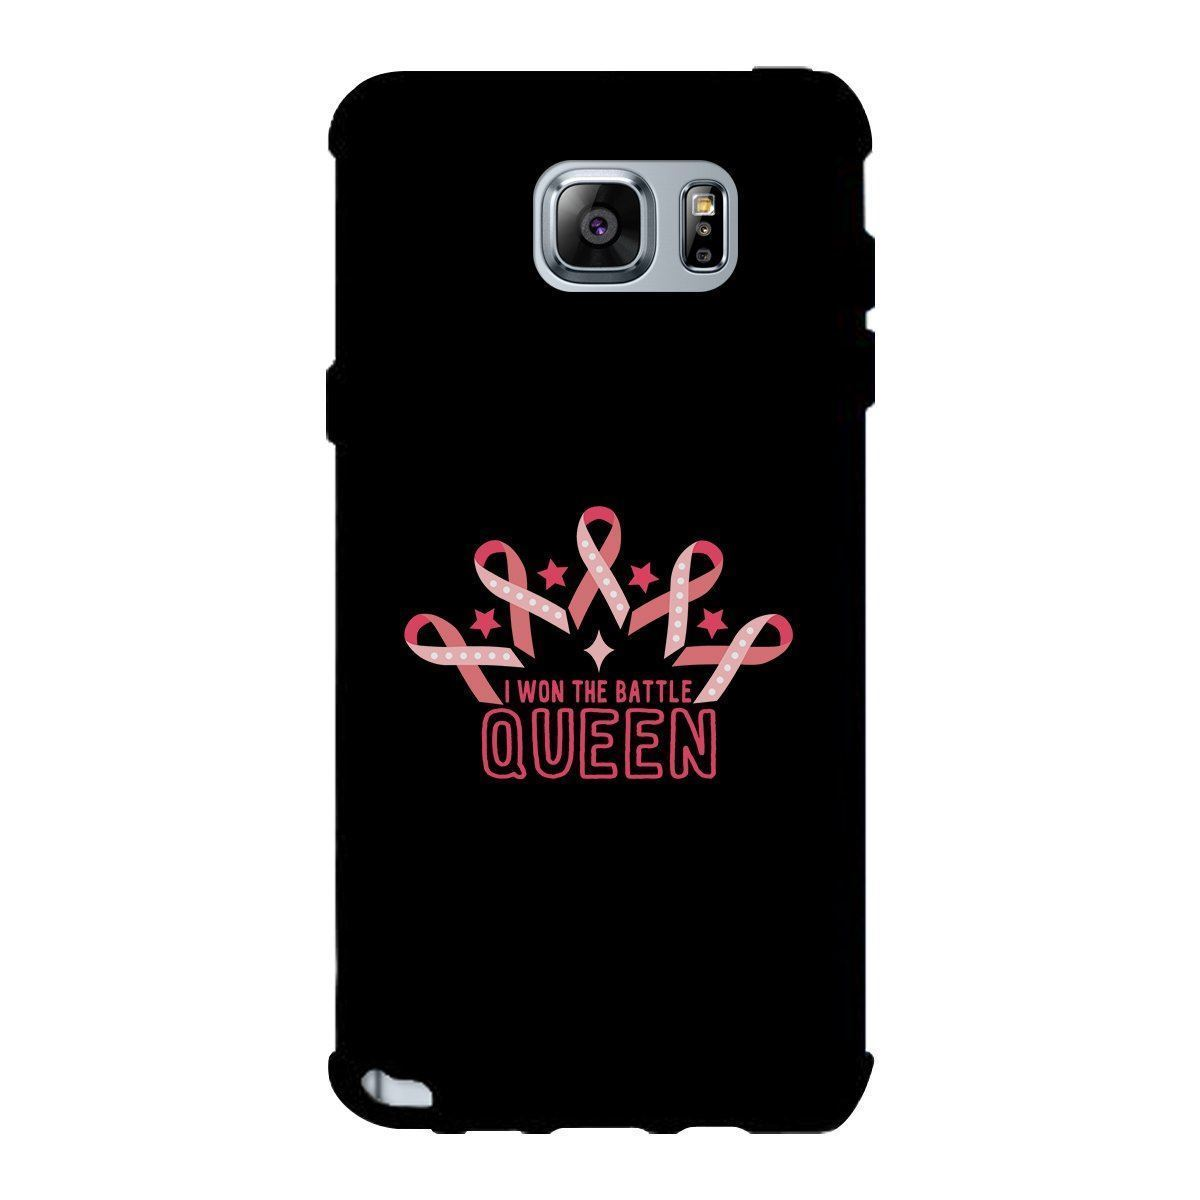 Won The Battle Queen Phone Case Breast Cancer Awareness Gifts